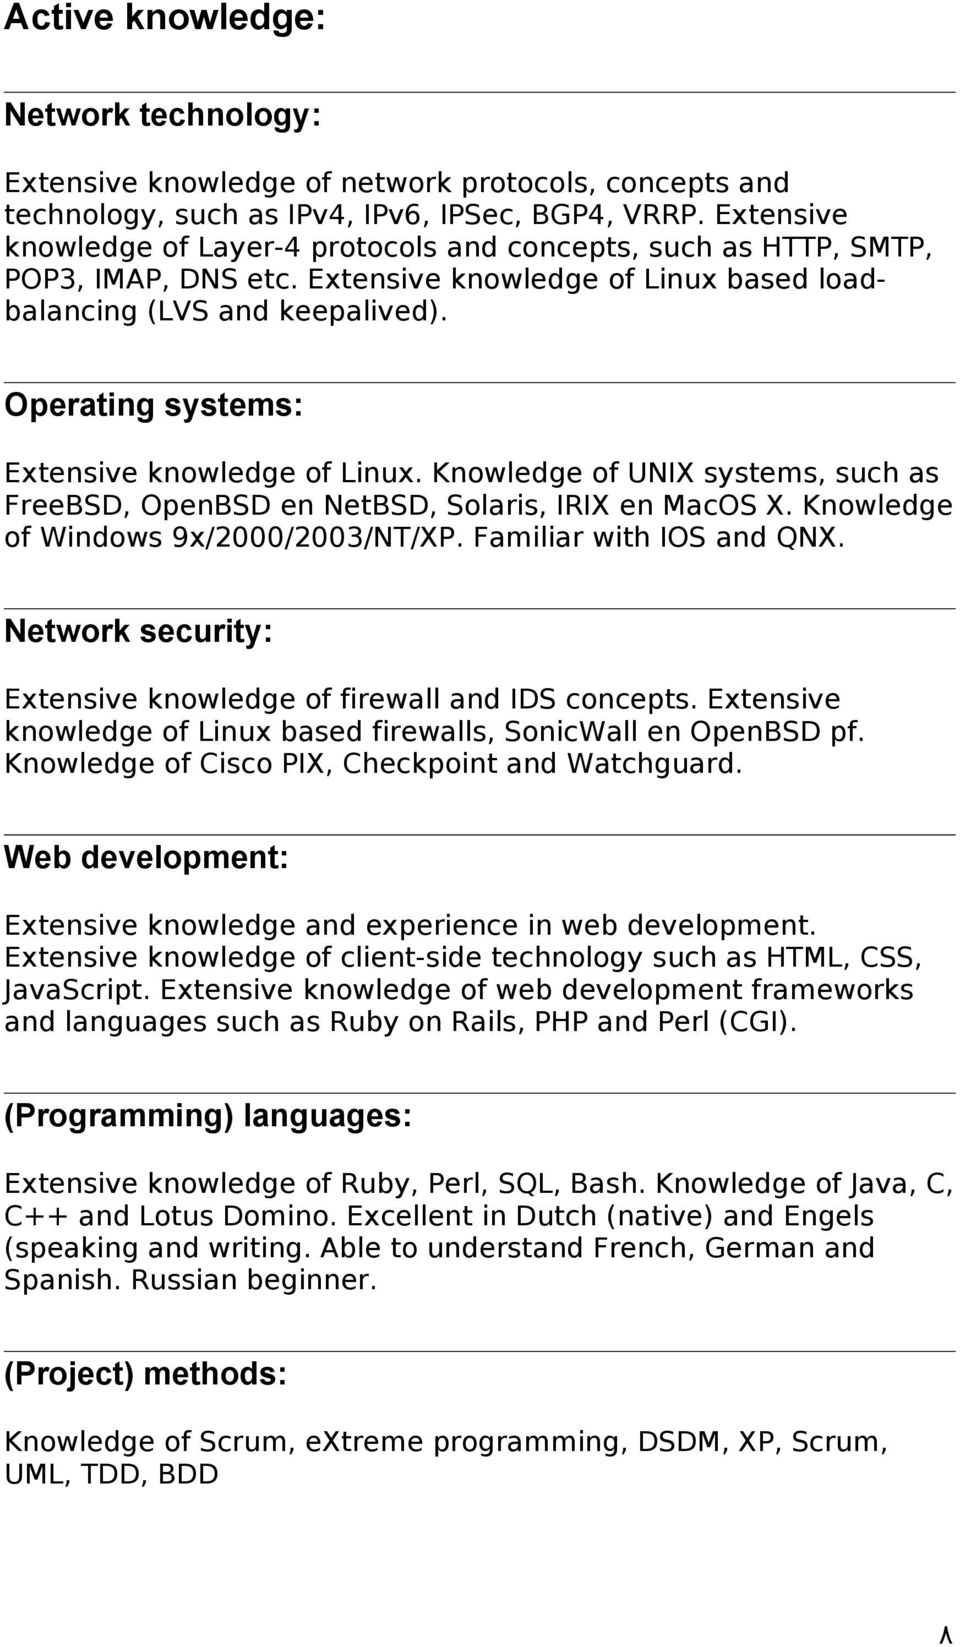 Operating systems: Extensive knowledge of Linux. Knowledge of UNIX systems, such as FreeBSD, OpenBSD en NetBSD, Solaris, IRIX en MacOS X. Knowledge of Windows 9x/2000/2003/NT/XP.